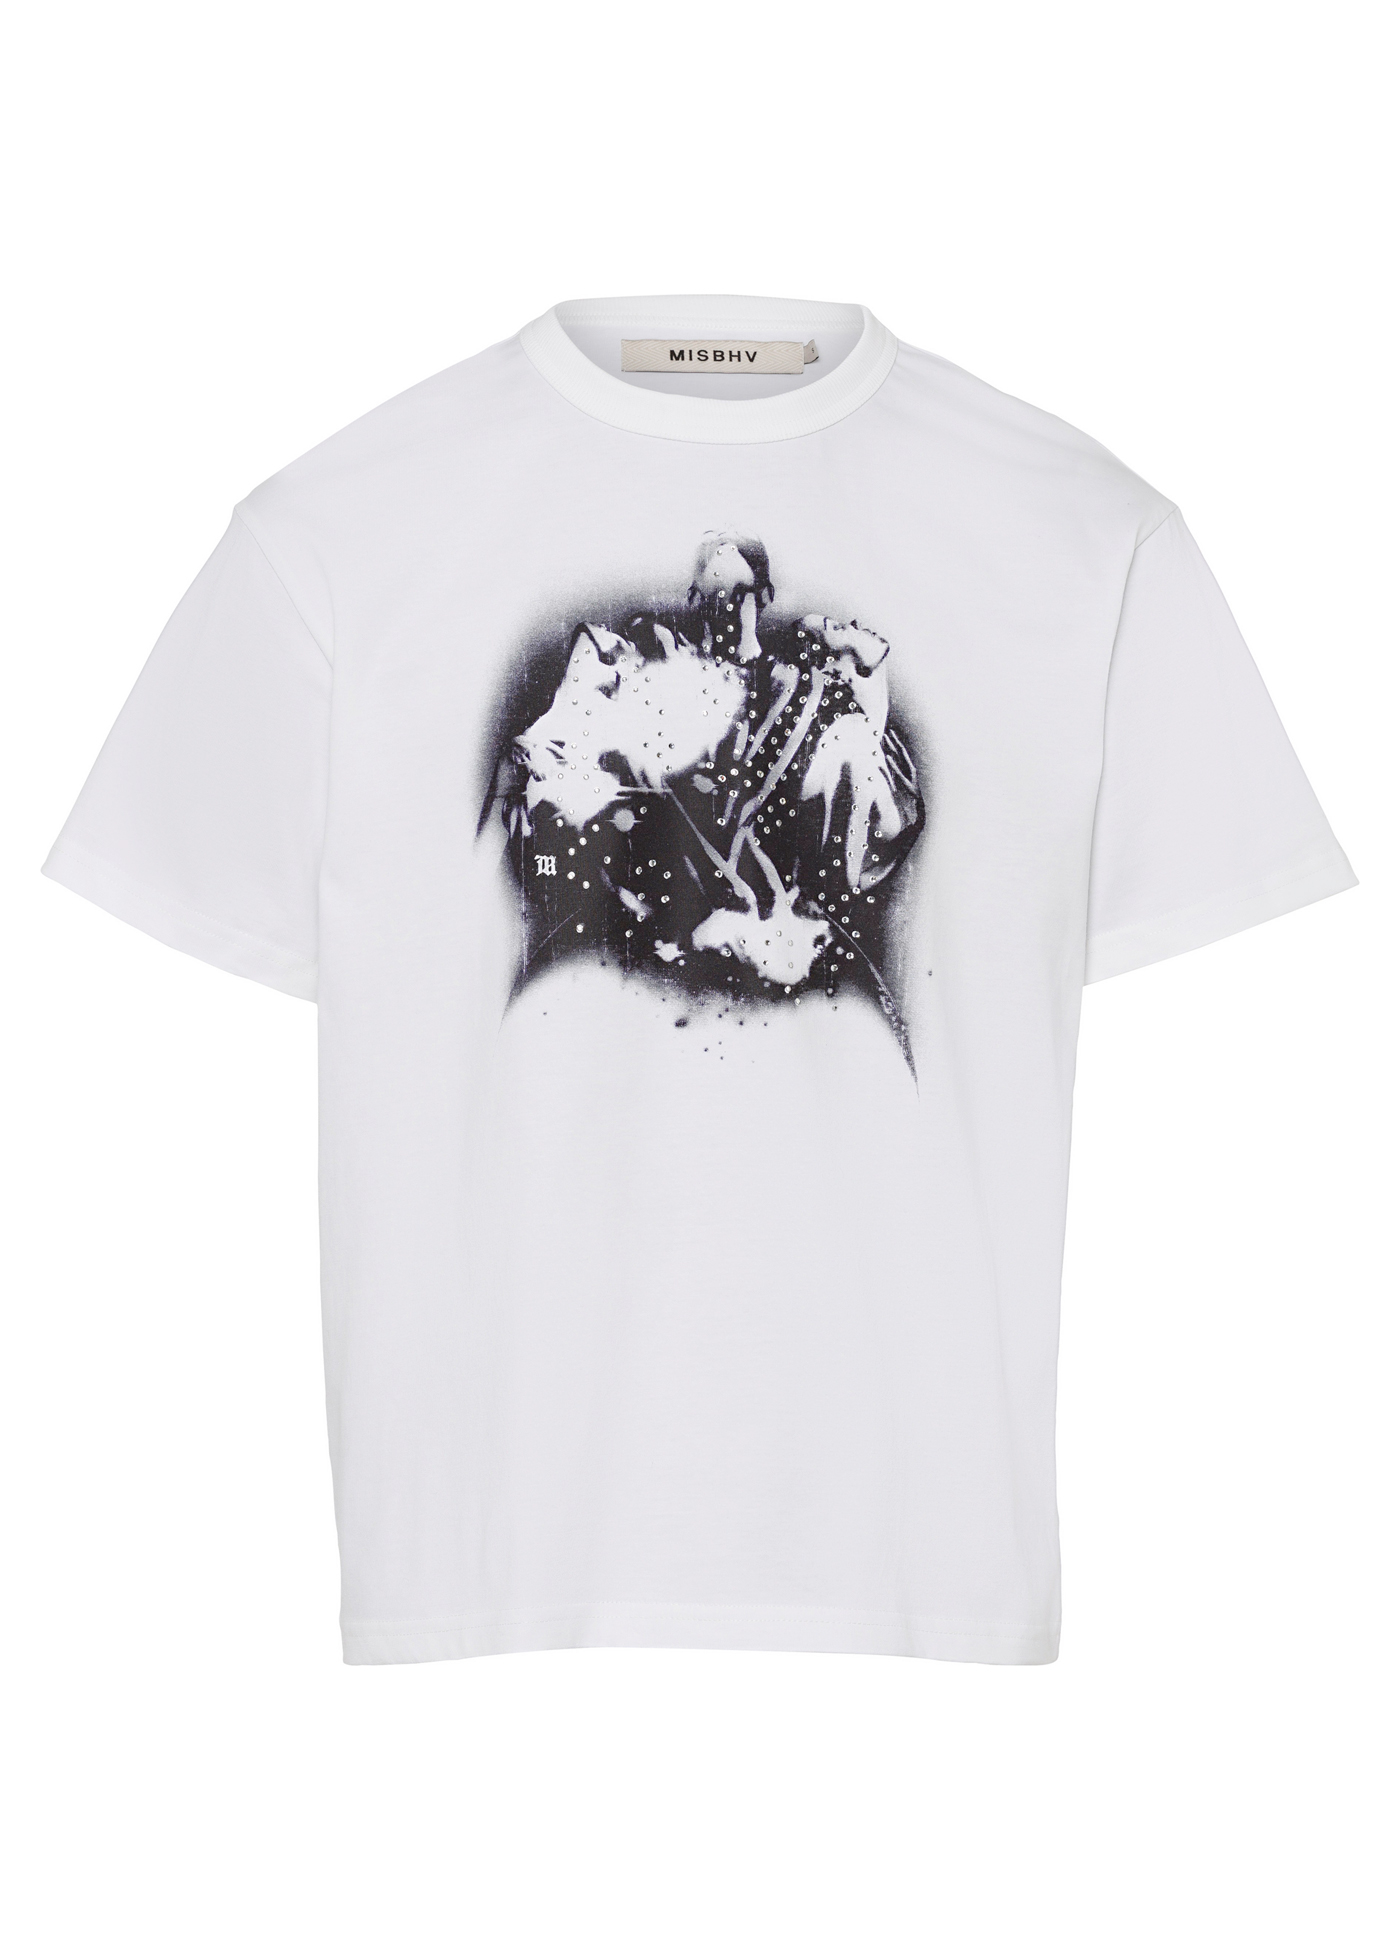 DISTANT DREAMS T-SHIRT image number 0